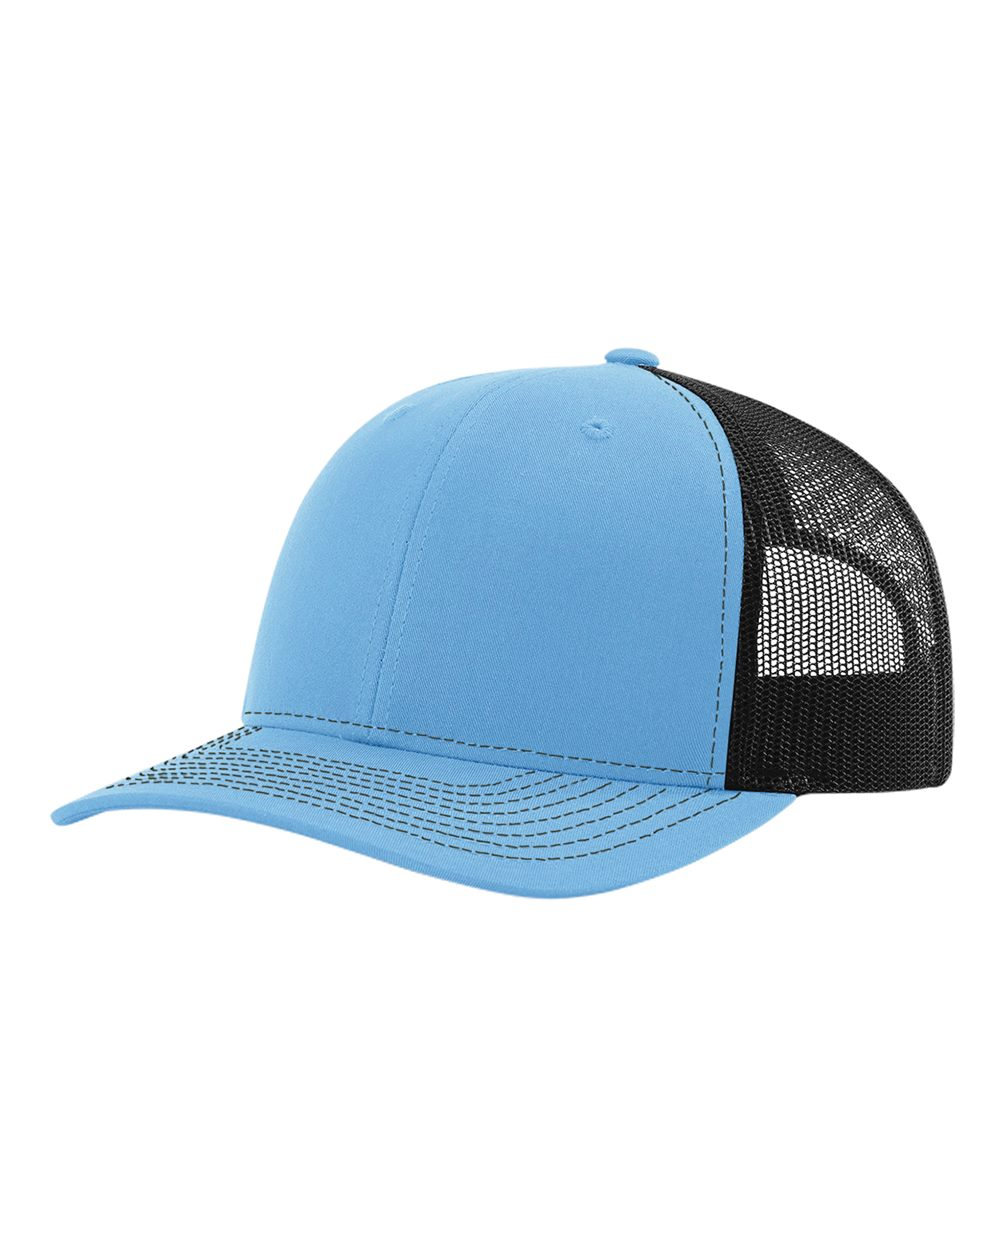 click to view Columbia Blue/ Black